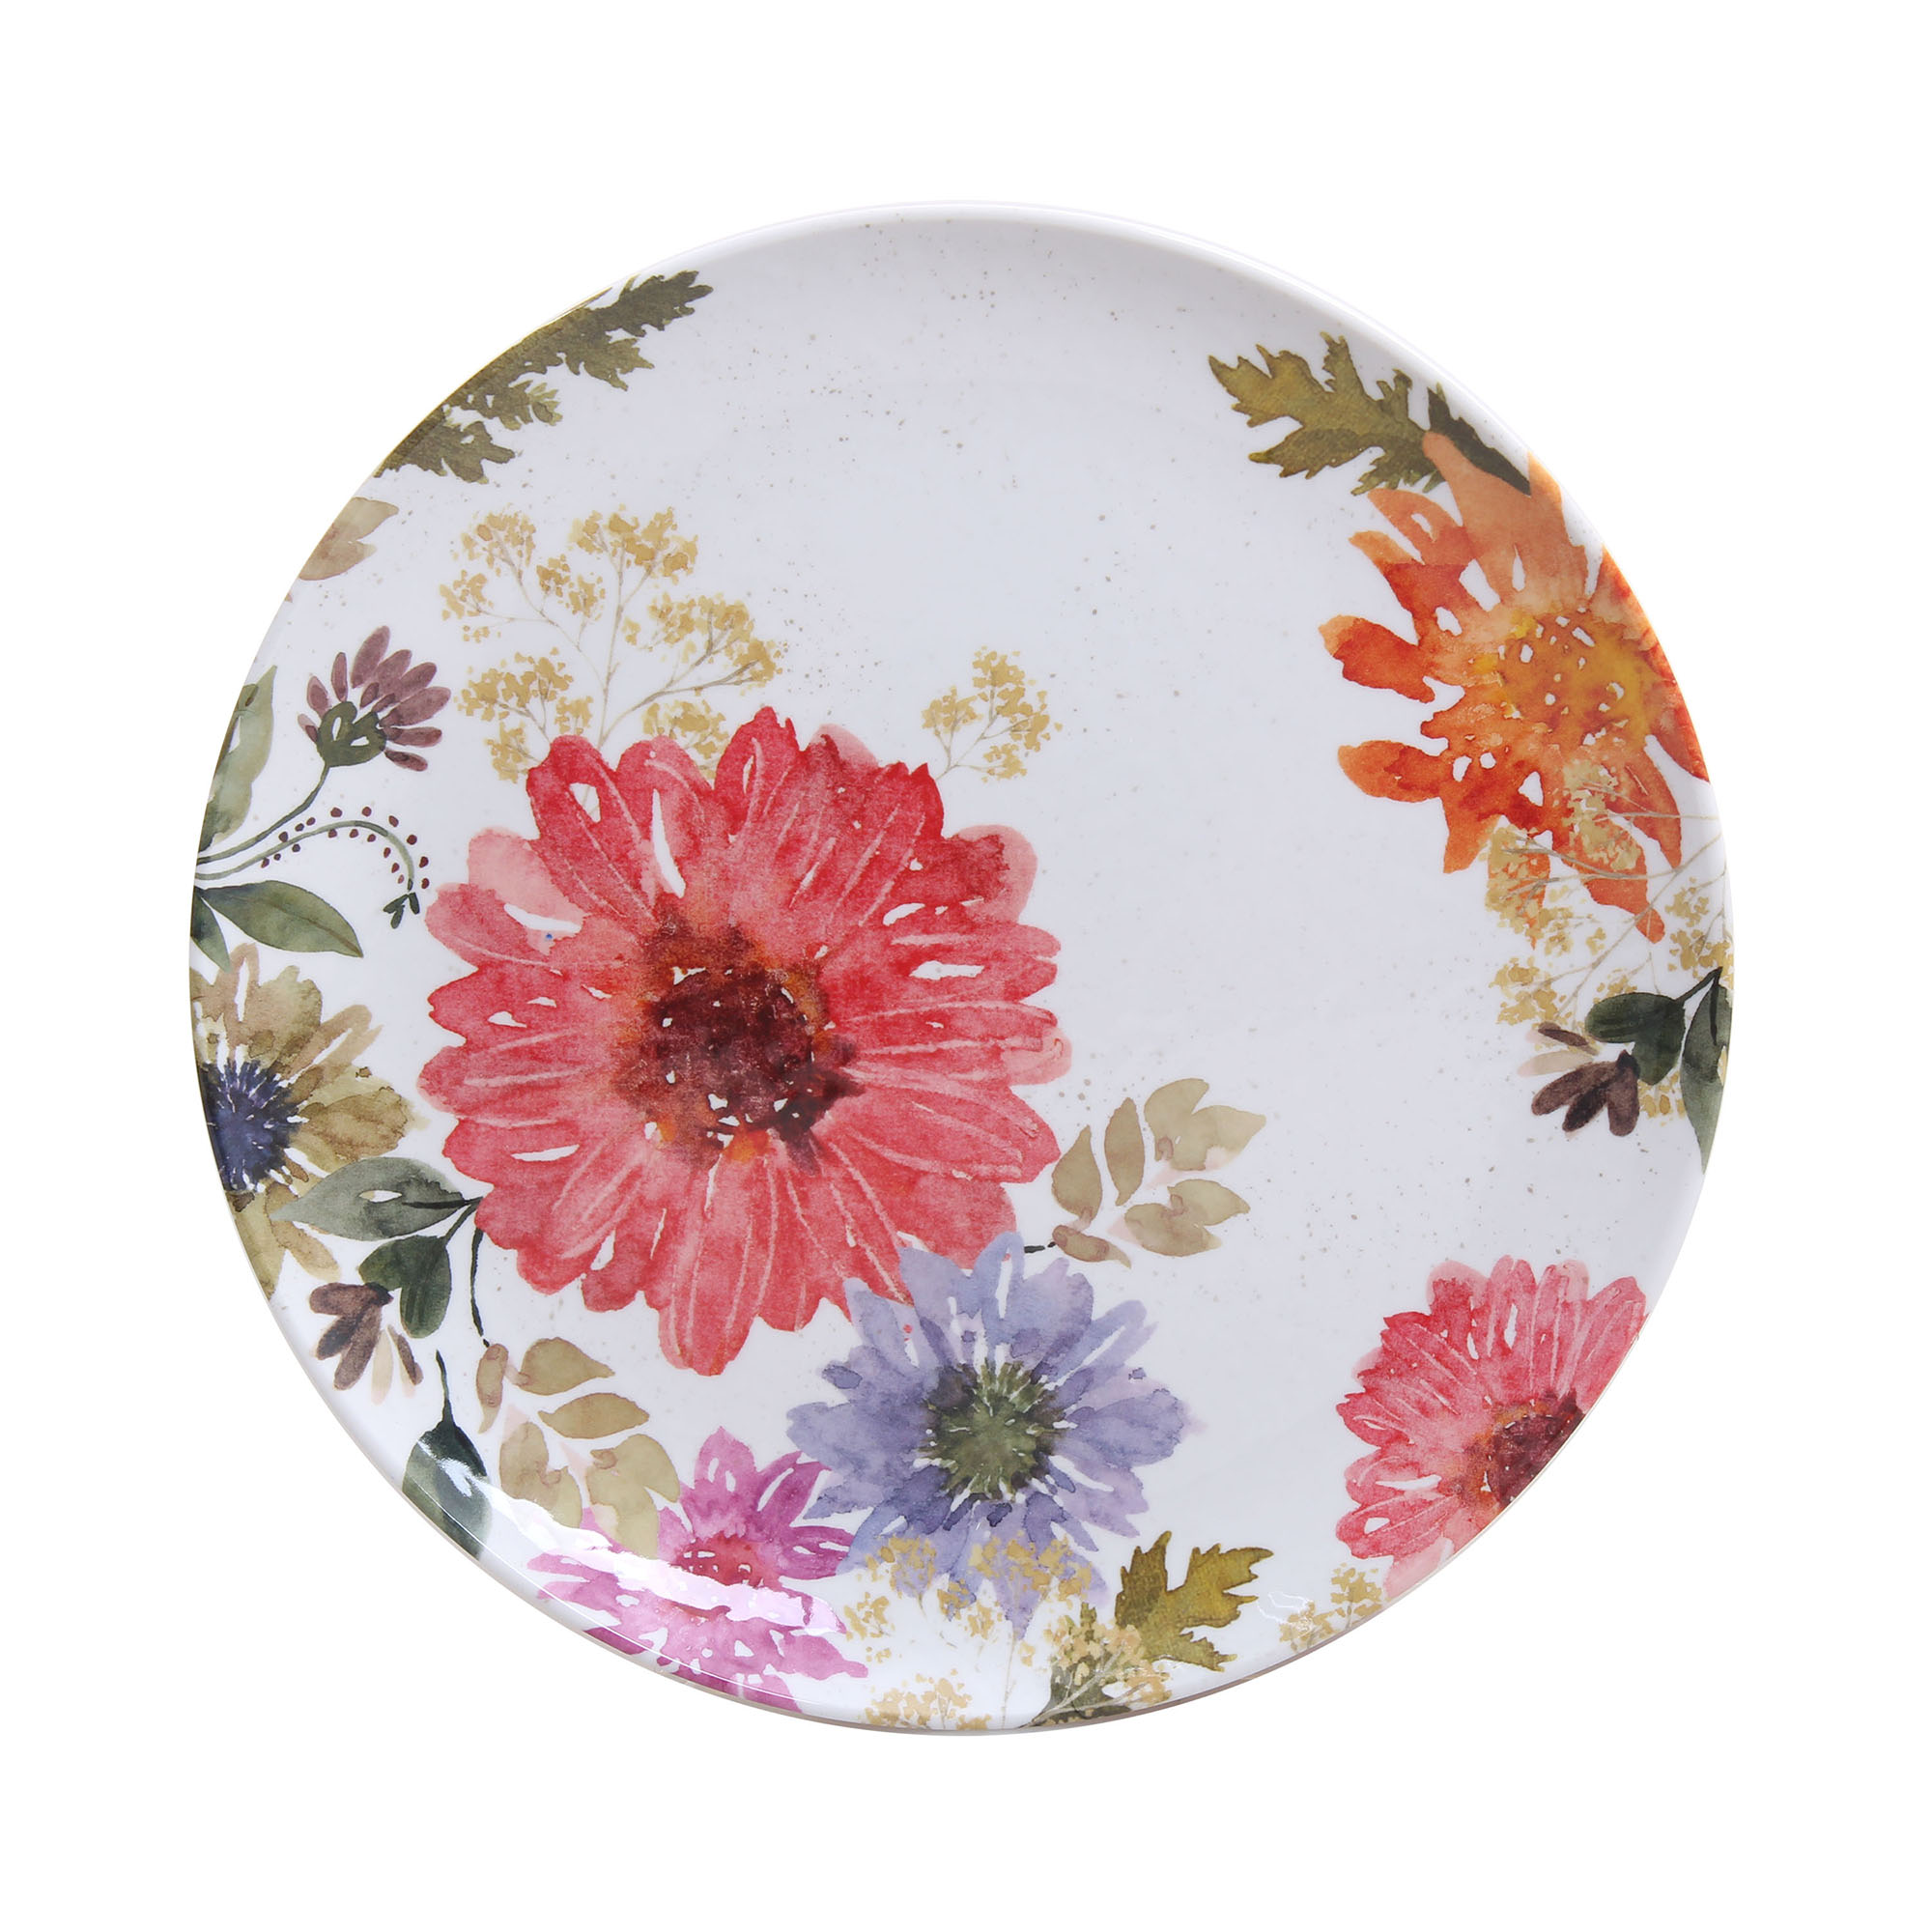 Better Homes & Gardens Floral Melamine Salad Plate, Set of 4